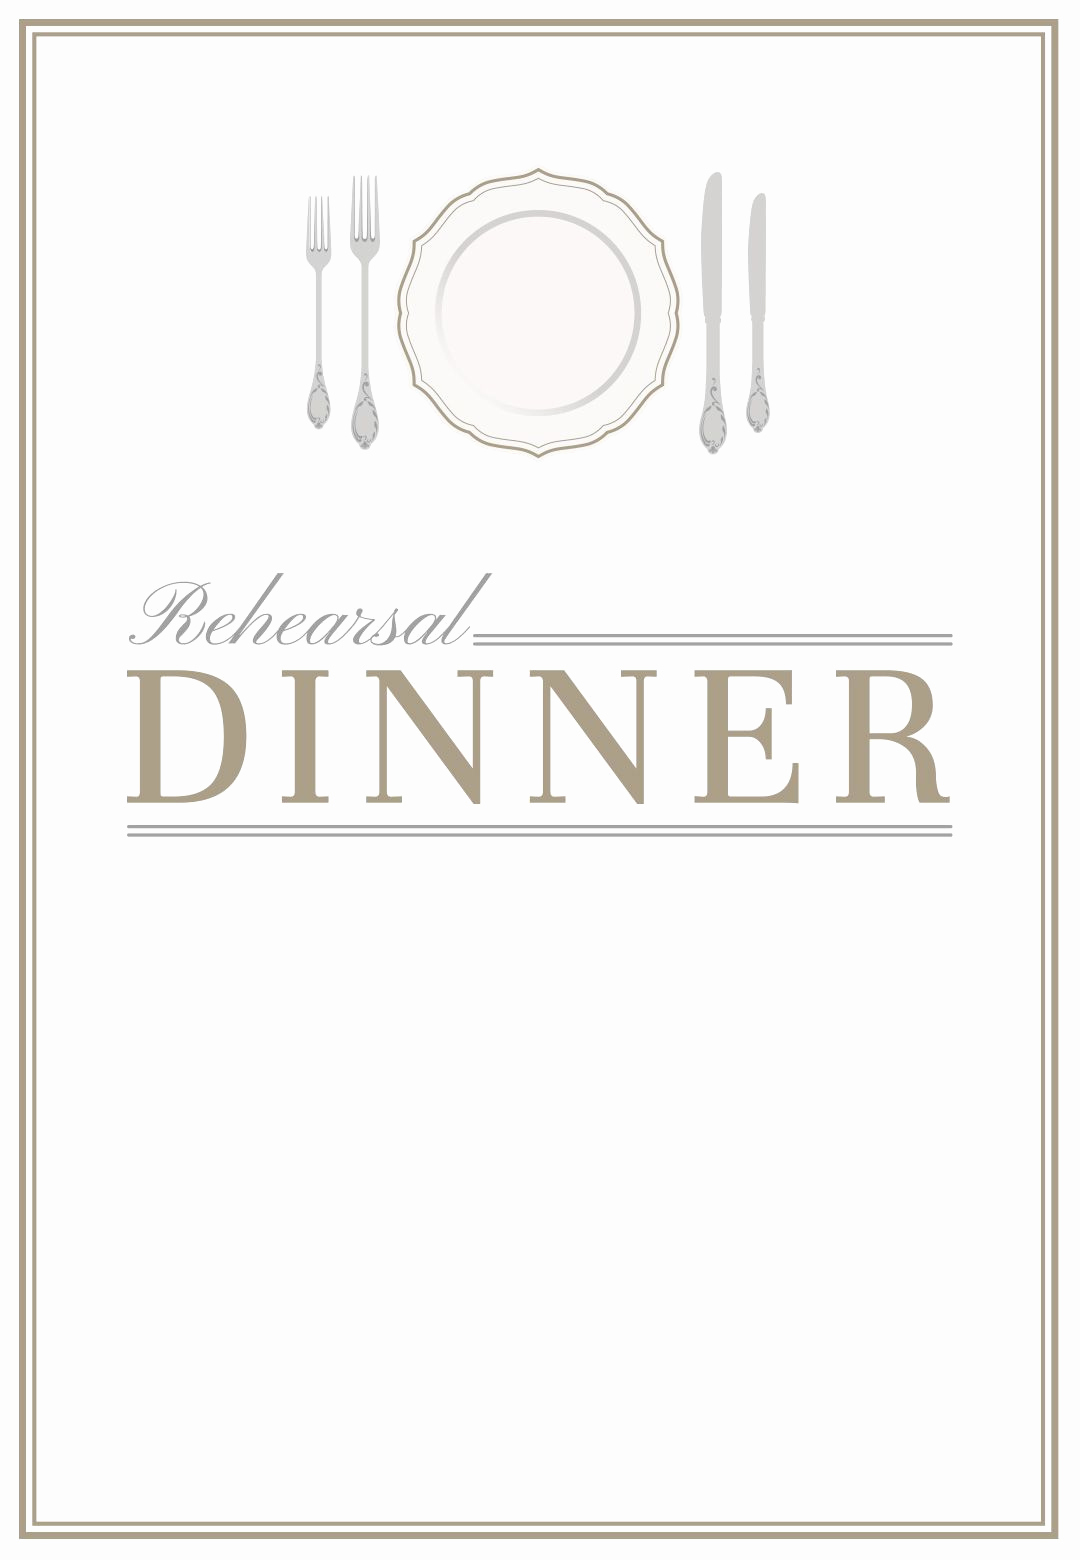 Business Dinner Invitation Template New Dinner Plate Template & Download Plate with Blue Patterned